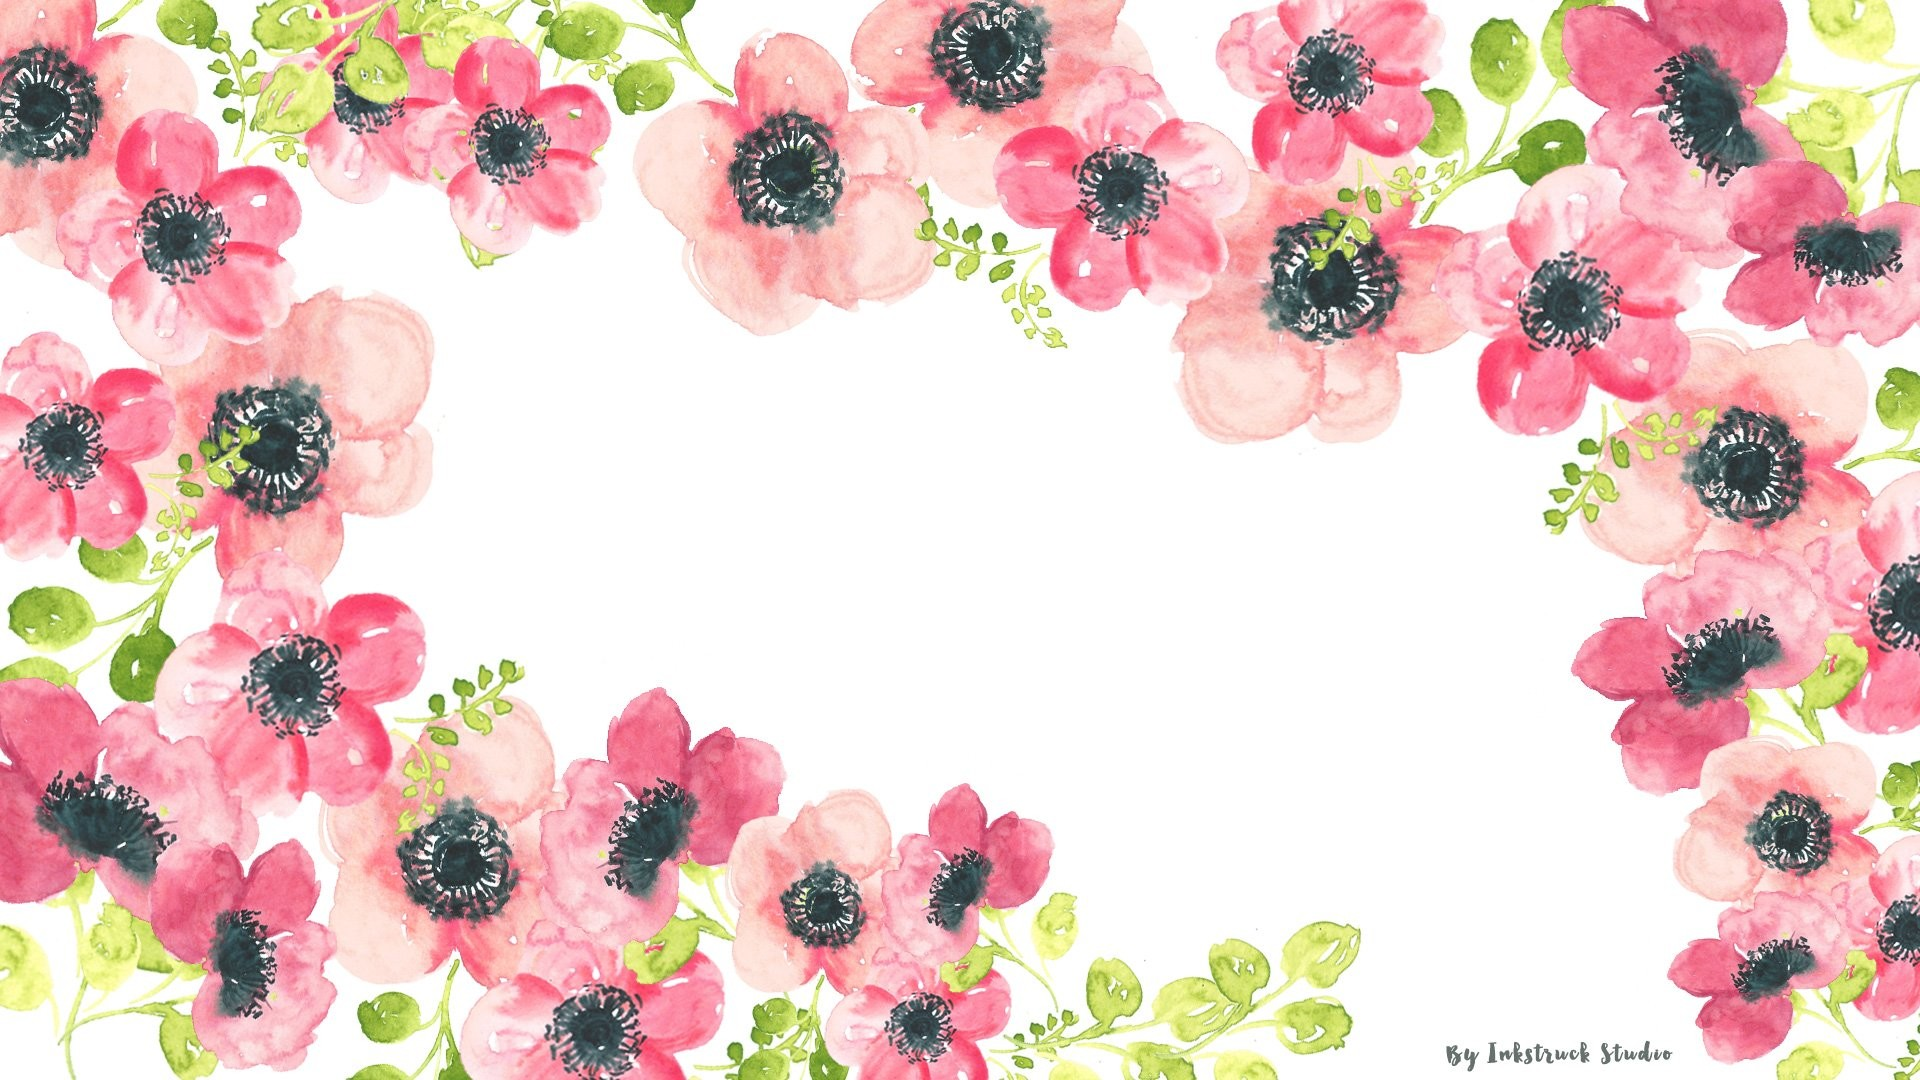 1920x1080 Download the choice of your watercolor floral wallpapers by clicking the  links below:-